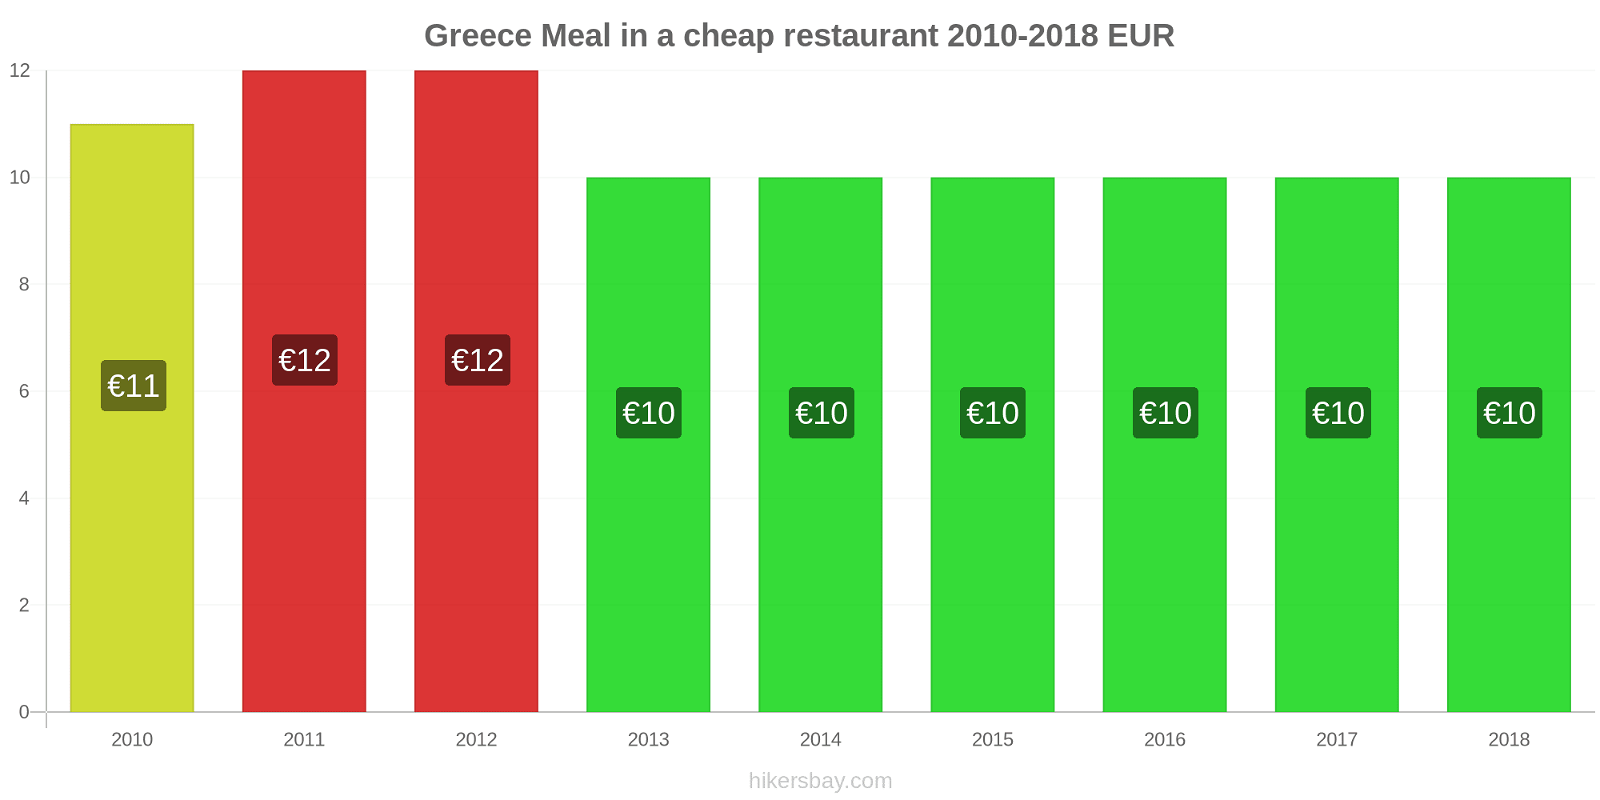 Greece price changes Meal in a cheap restaurant hikersbay.com